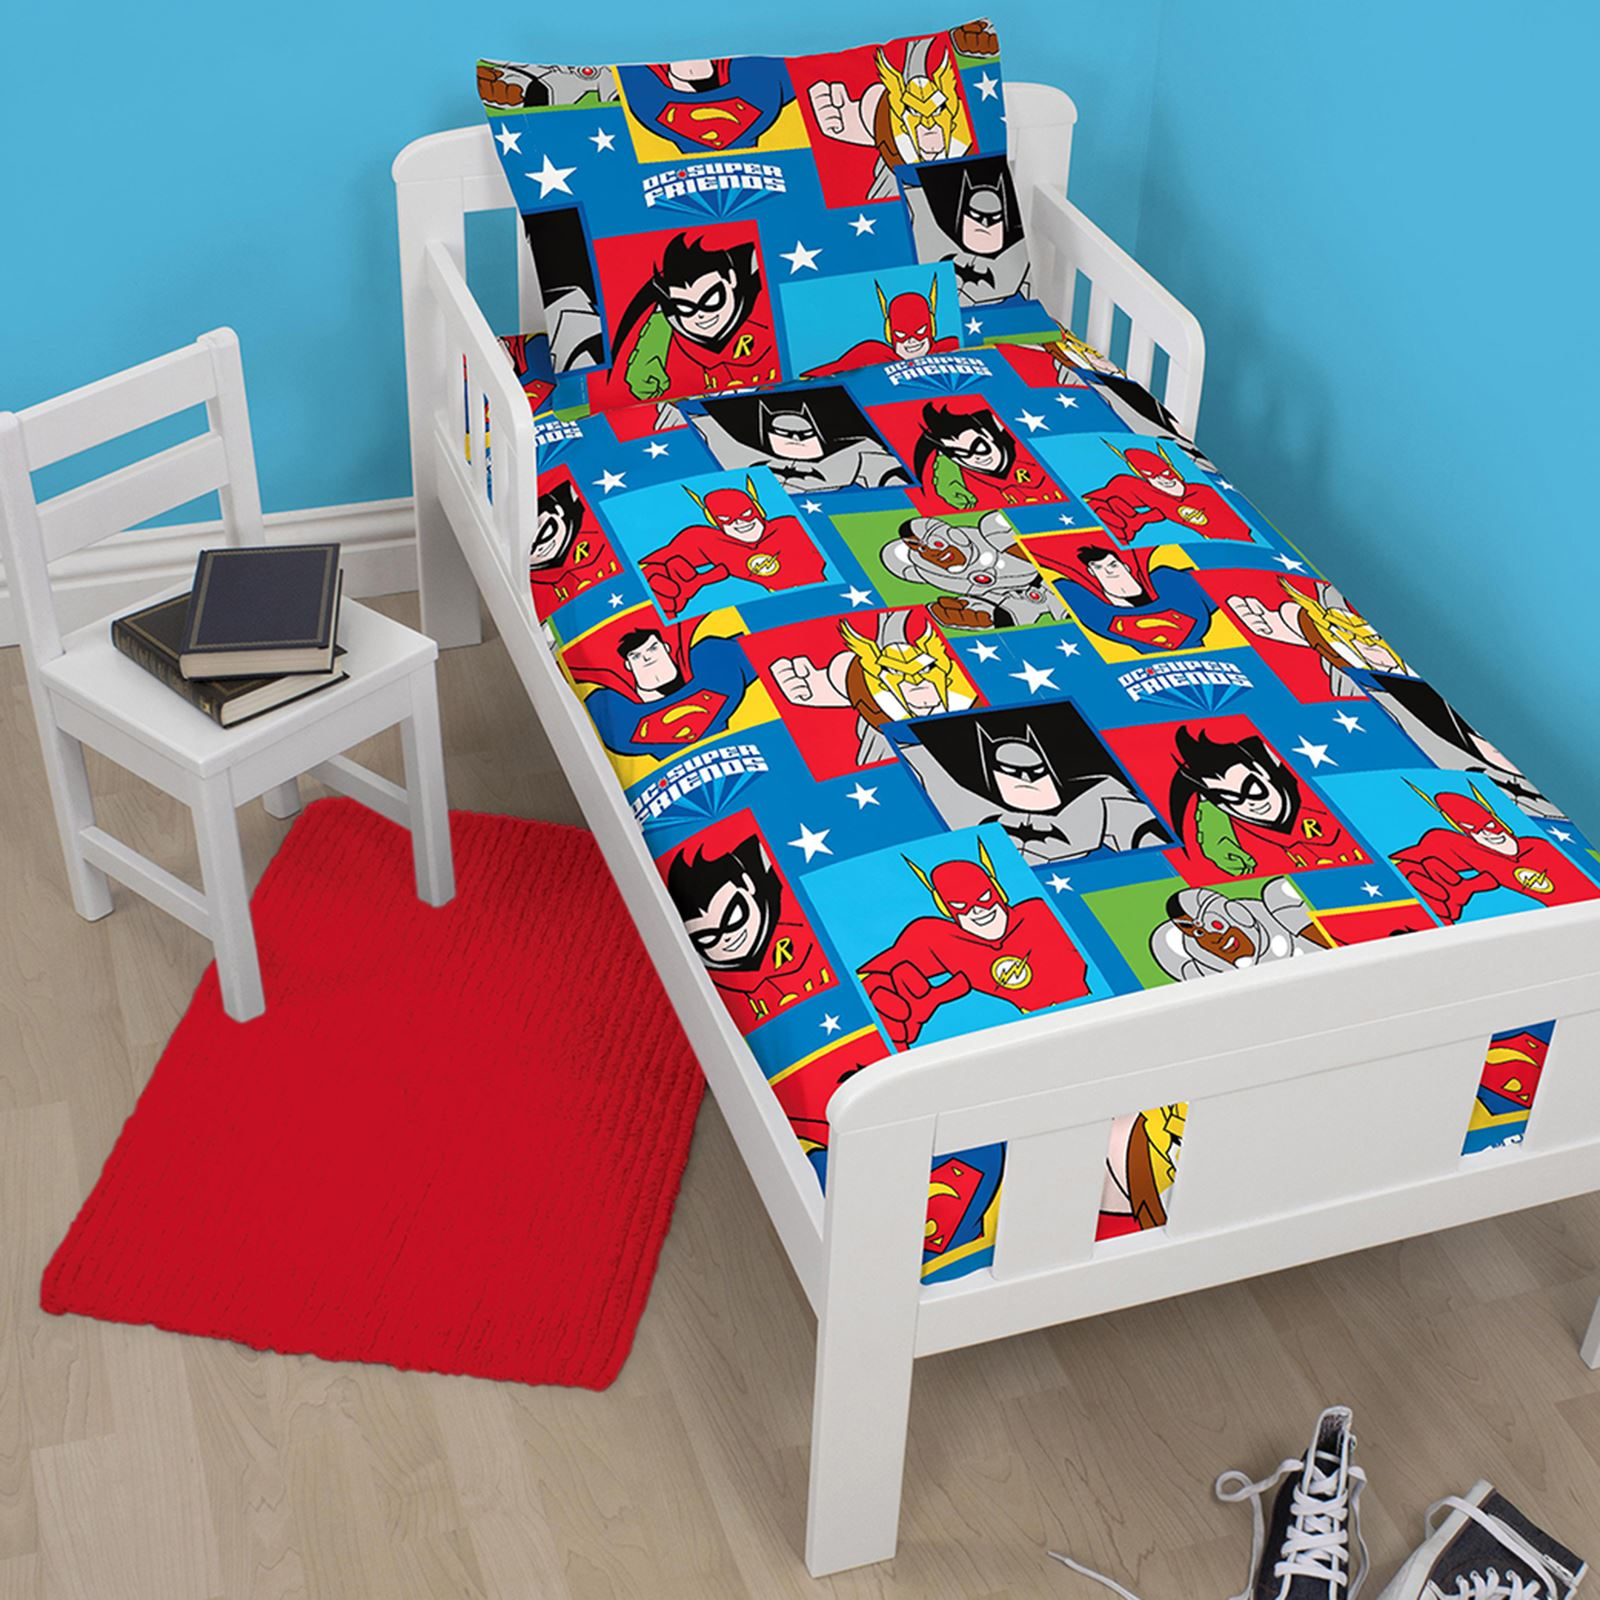 Cot Bed Duvet Cover Asda